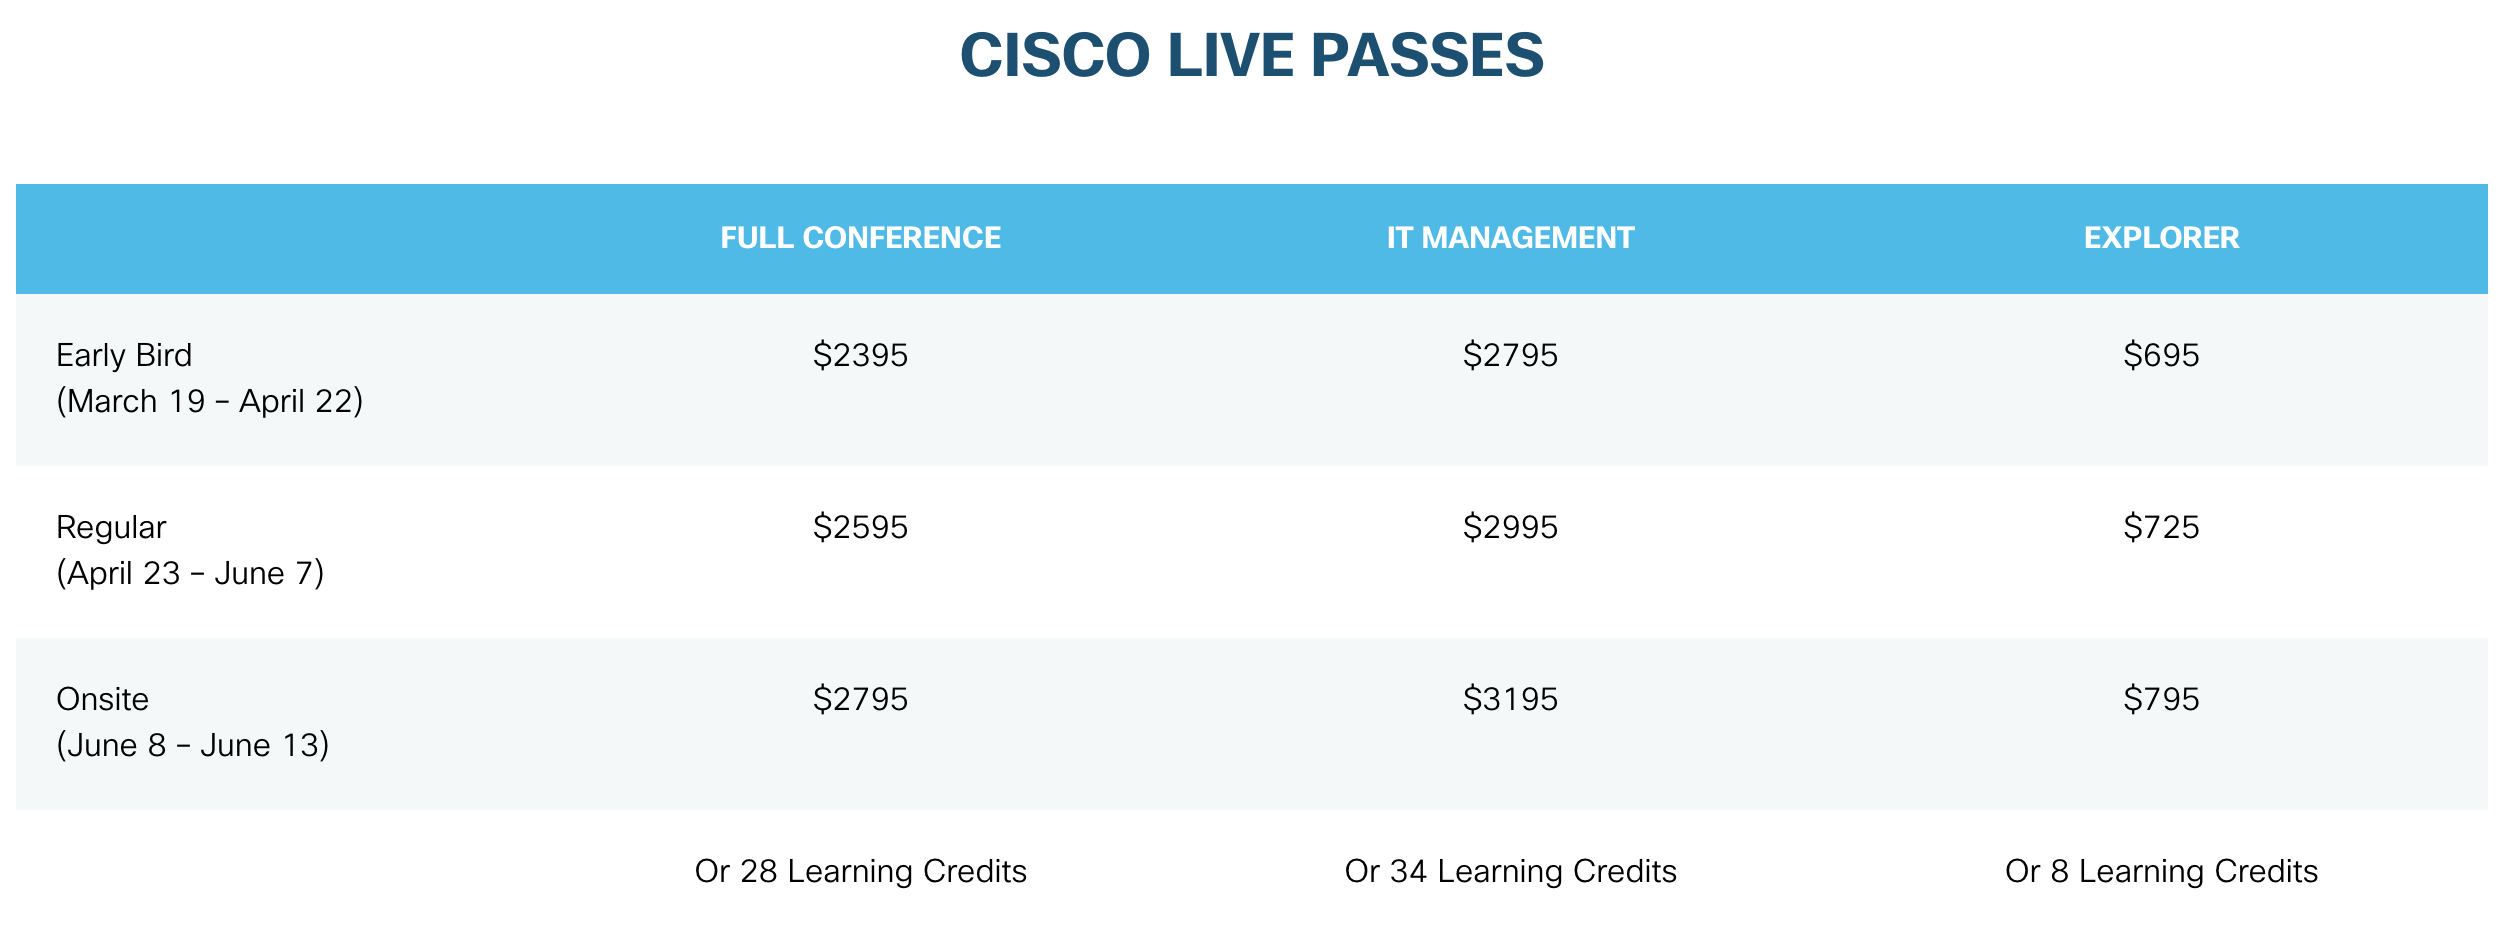 Cisco Live pass pricing